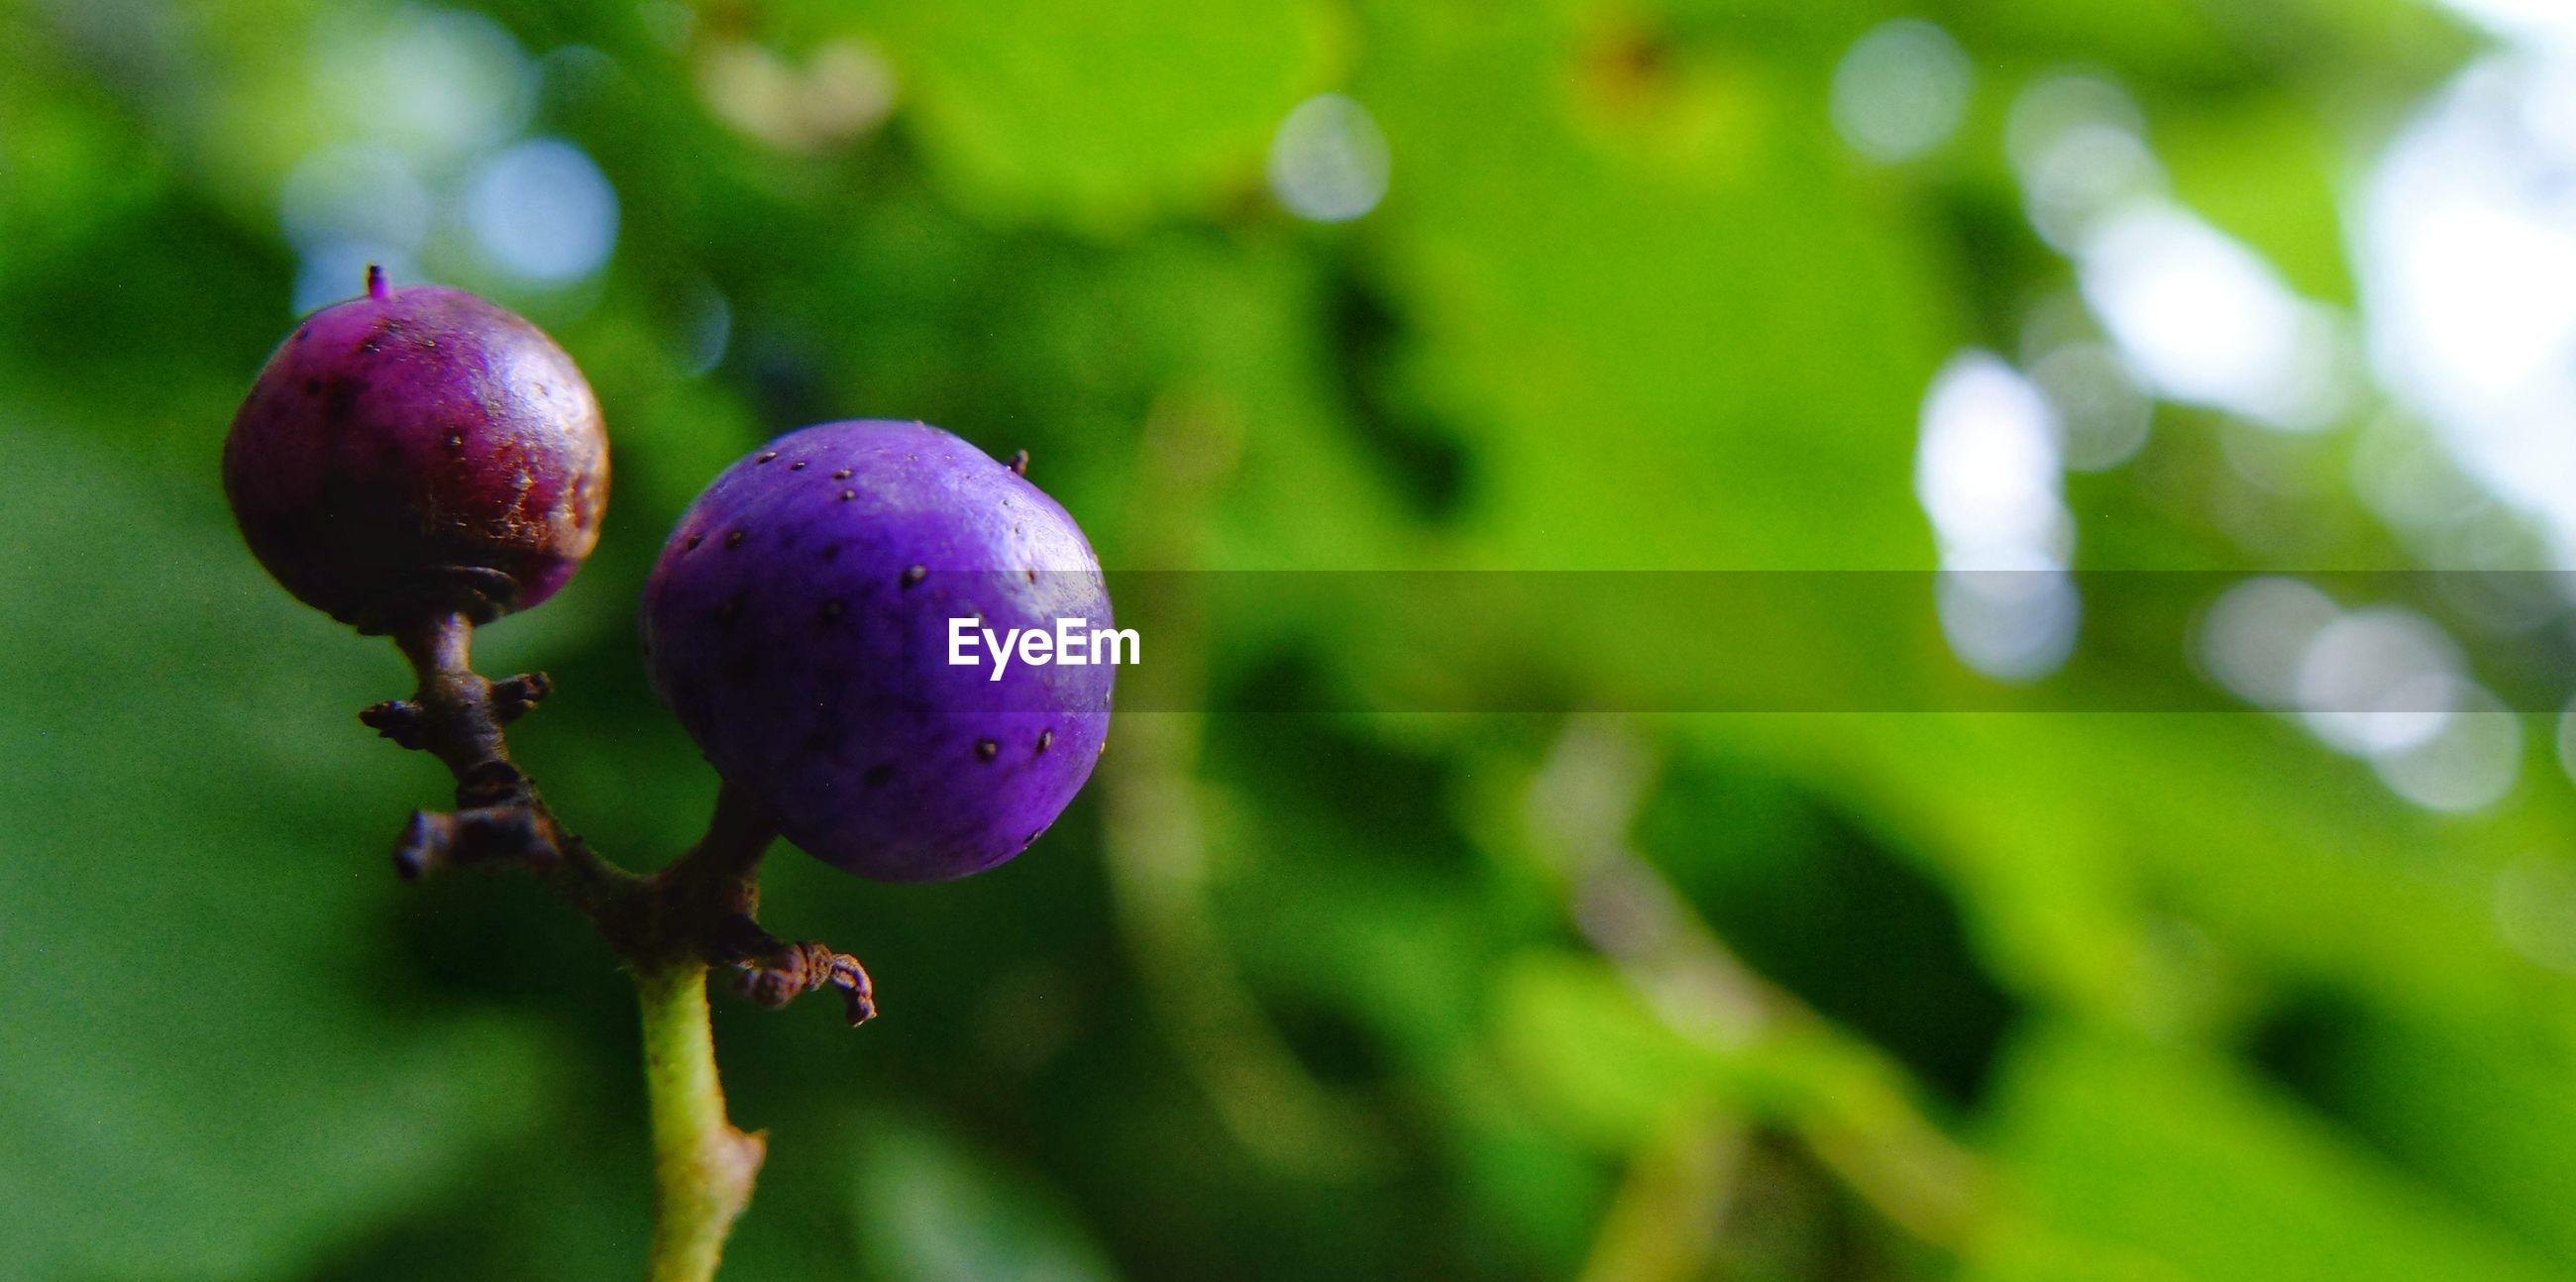 growth, fruit, close-up, bud, purple, freshness, focus on foreground, stem, green color, flower, fragility, nature, plant, beauty in nature, growing, outdoors, new life, springtime, purple color, flower head, no people, bloom, blossom, in bloom, petal, agriculture, botany